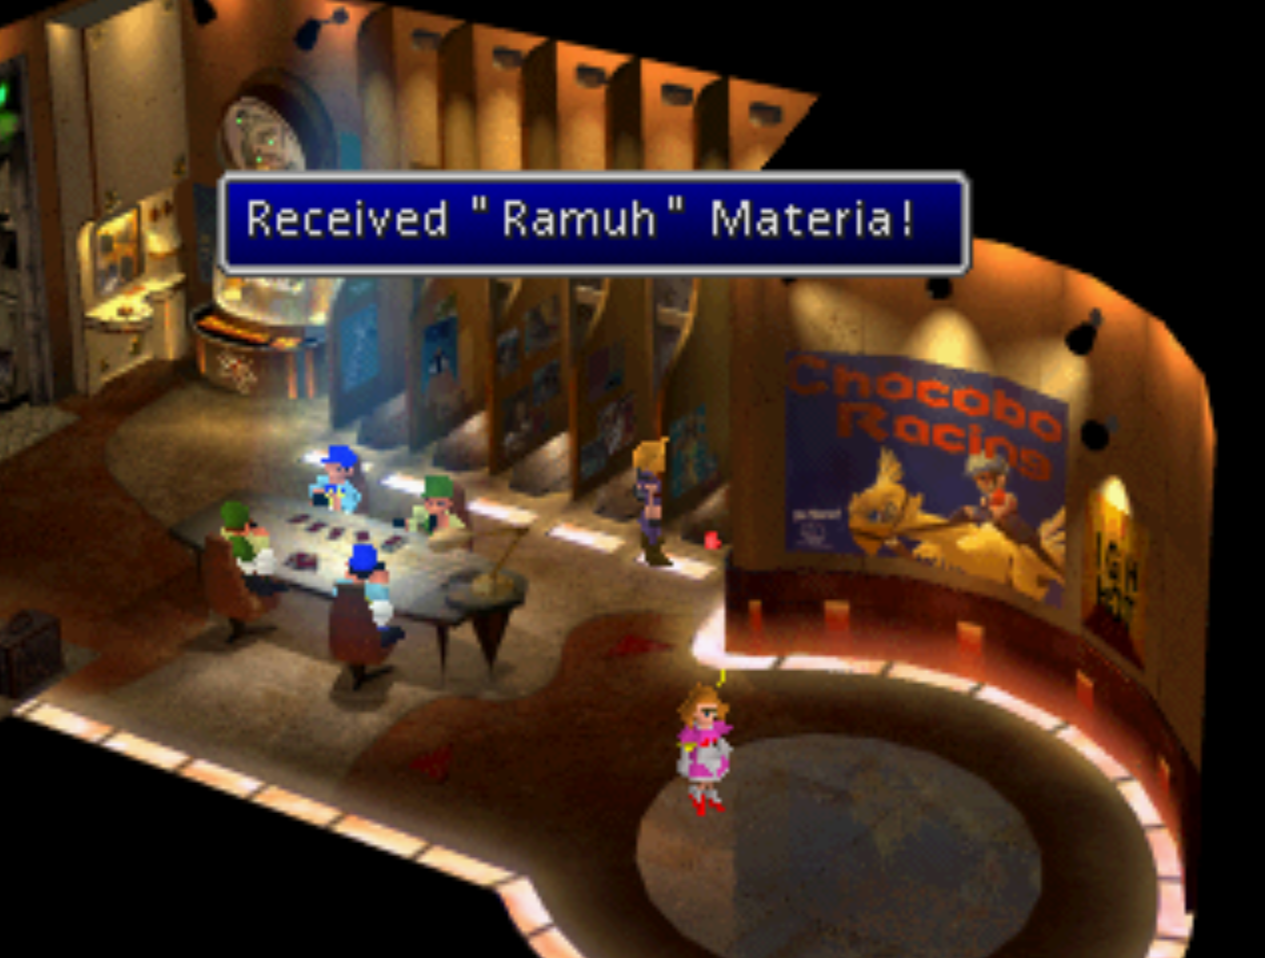 Ramuh Materia Received